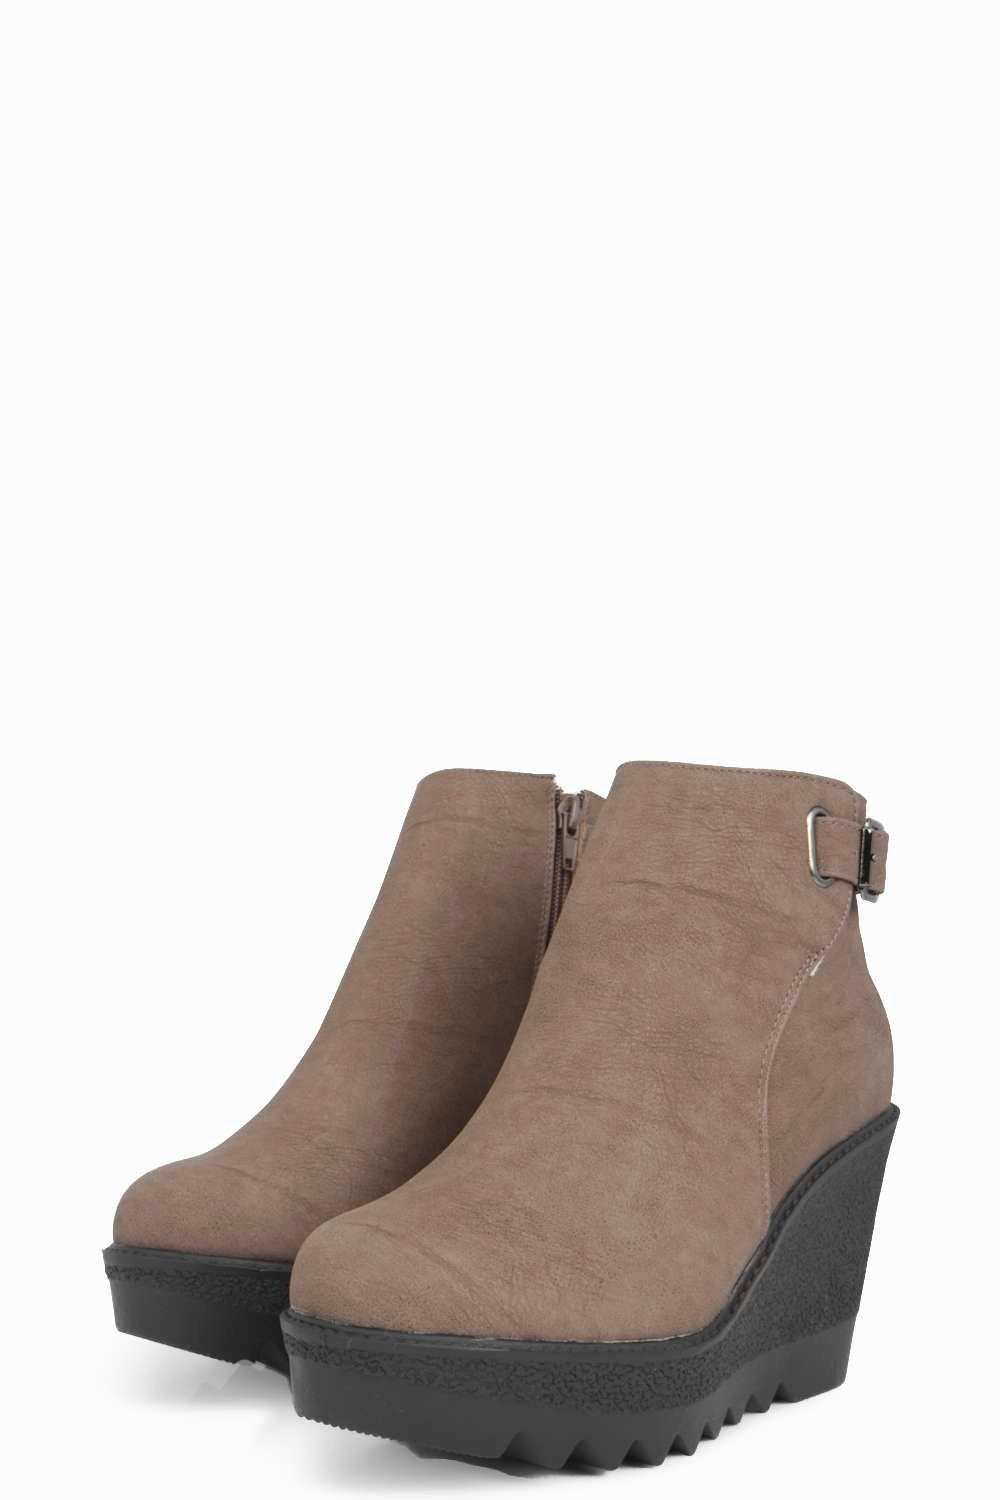 boohoo cleated sole wedge boot in lyst